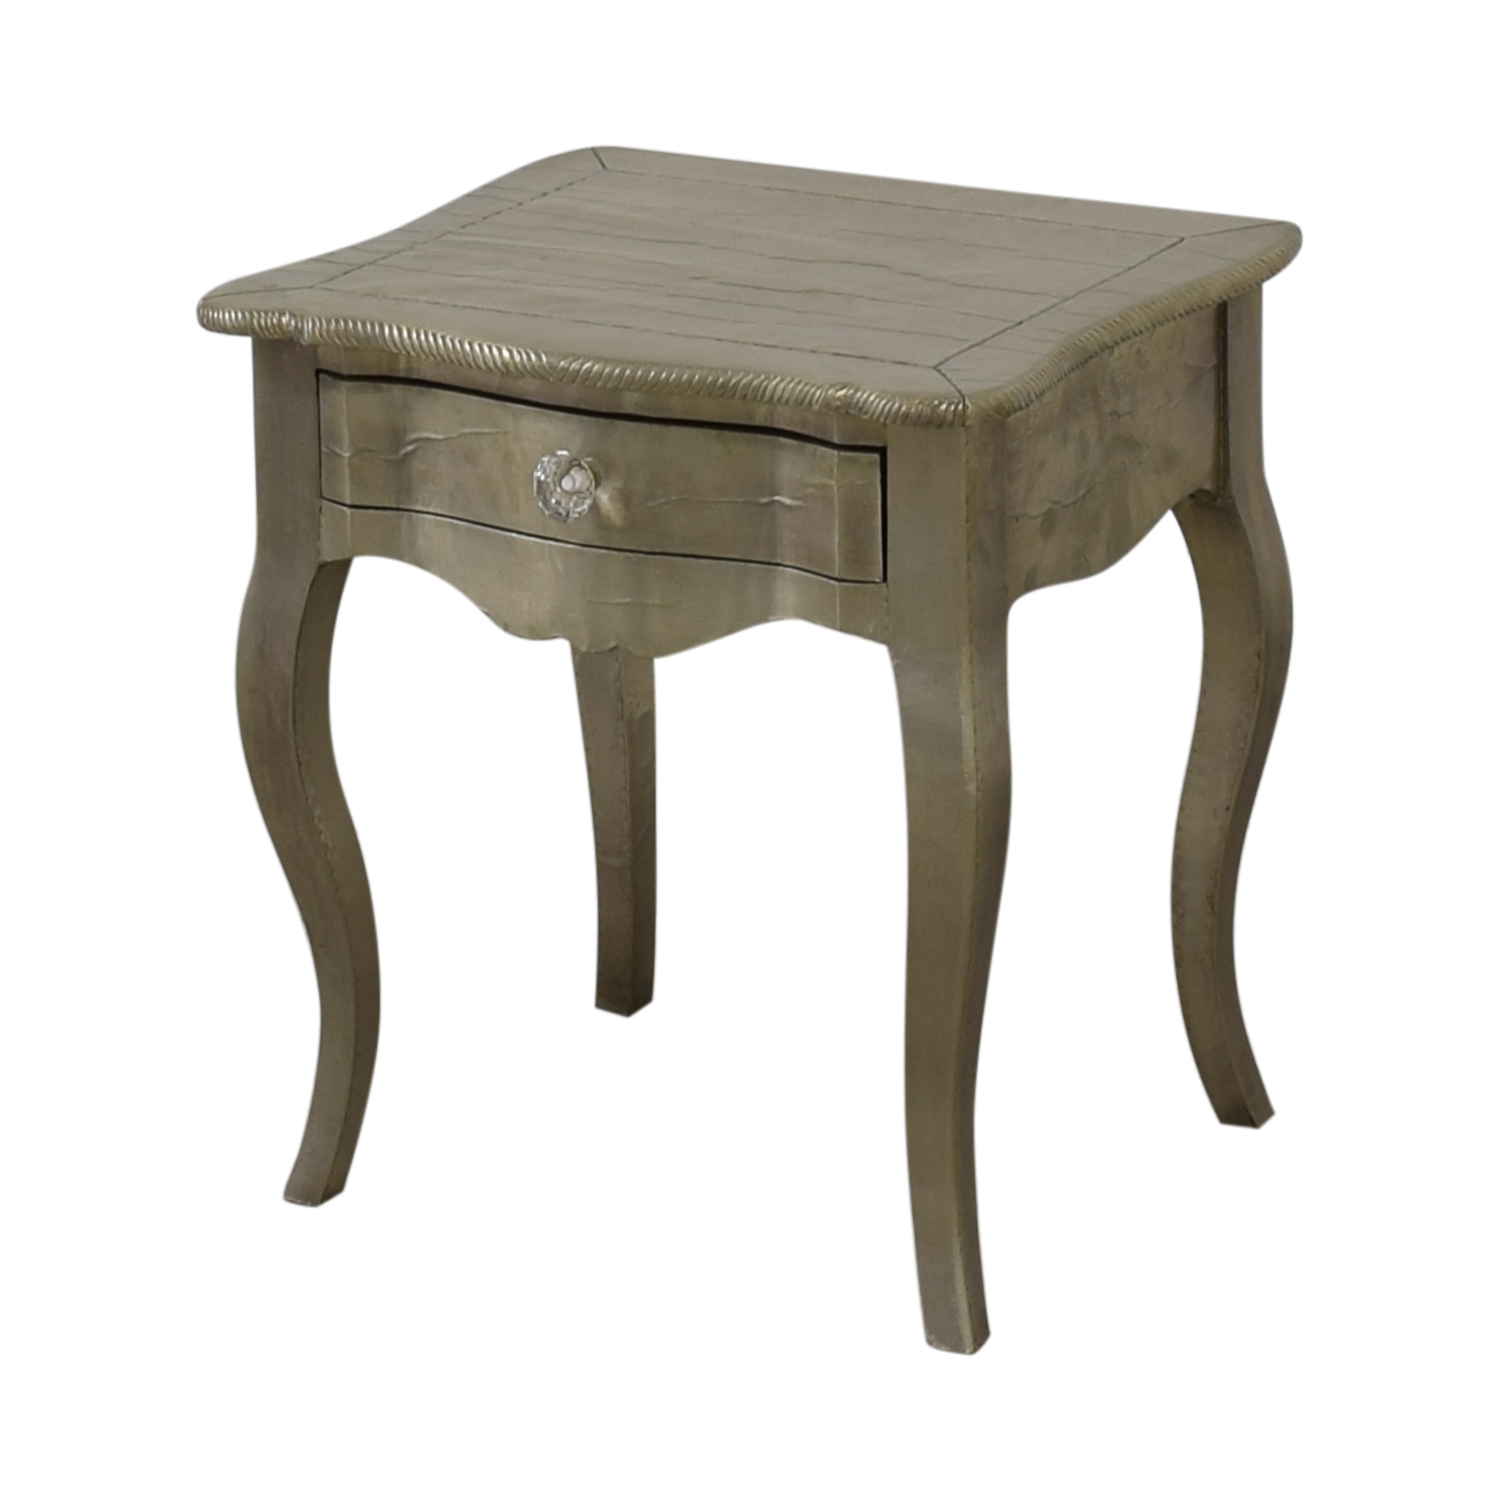 ABC Carpet & Home ABC Carpet & Home Wood Silver Leaf Bedside Table End Tables